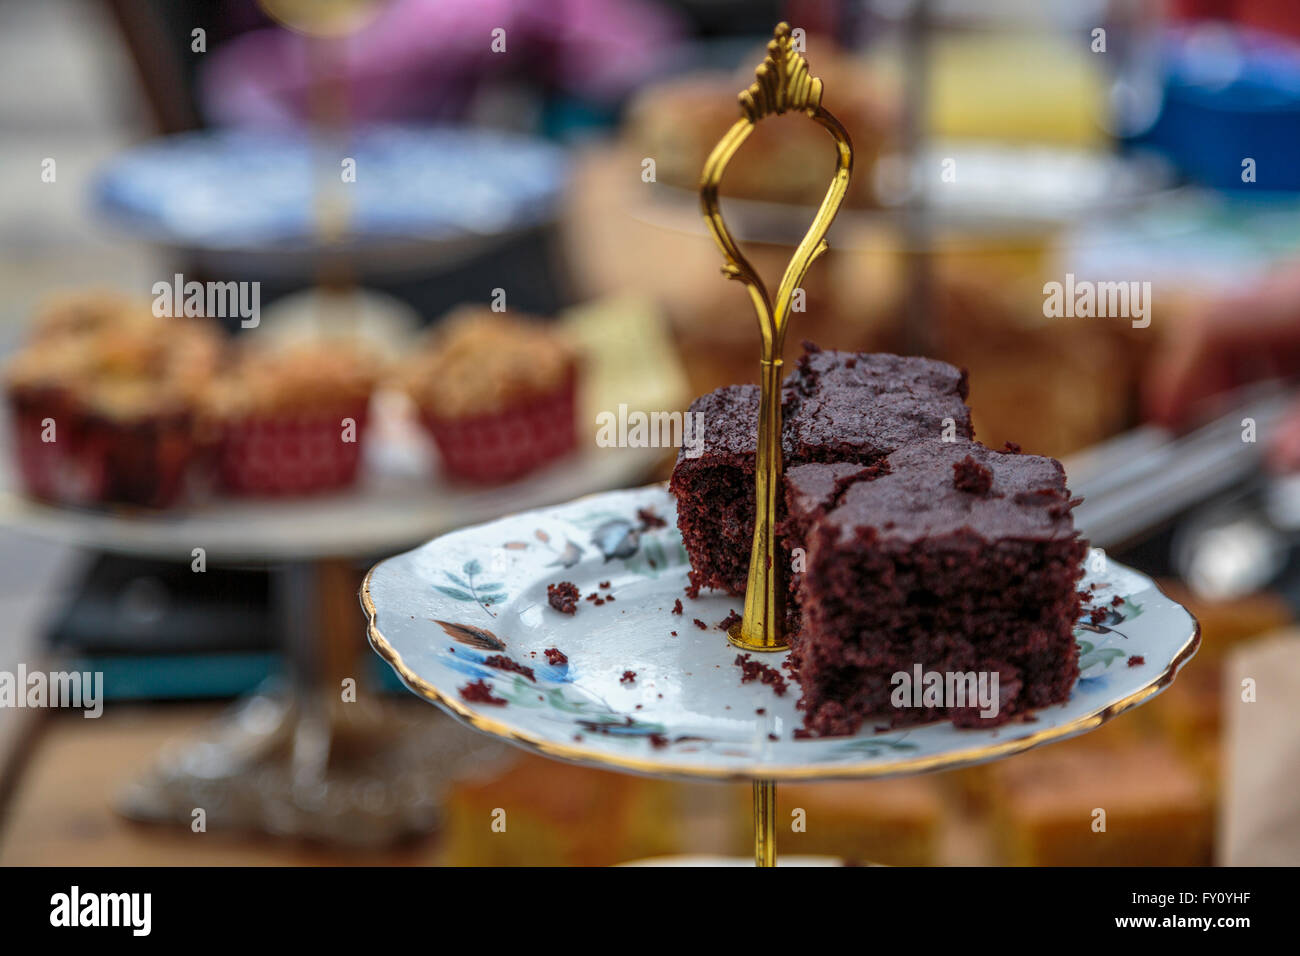 A home made piece of chocolate brownie cake on an ornate china serving dish wth gold handle - Stock Image